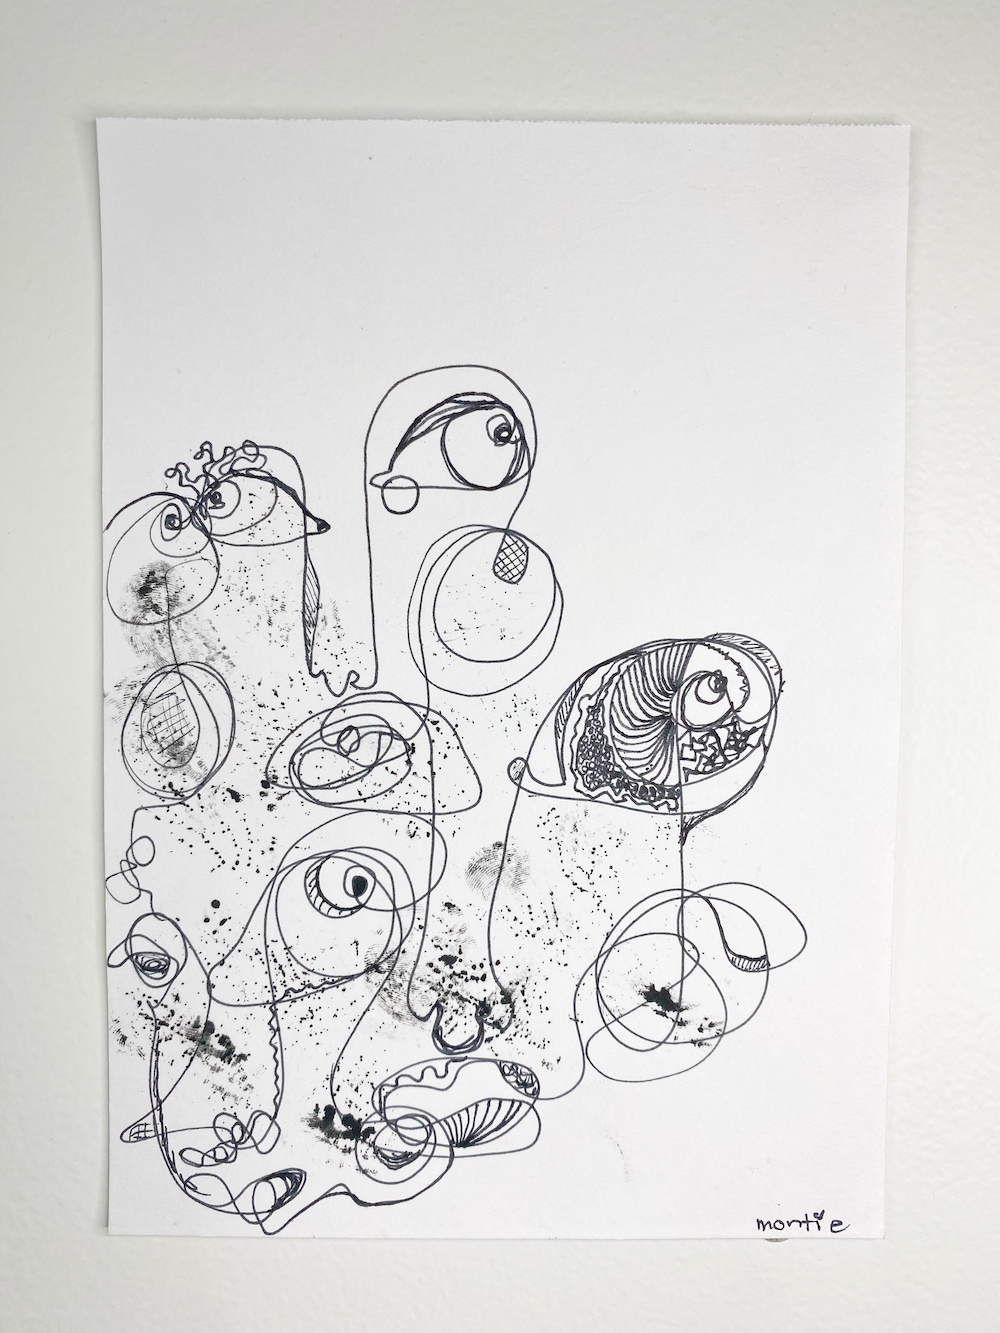 montie, lucid dream of dream of dreams, pen and ink